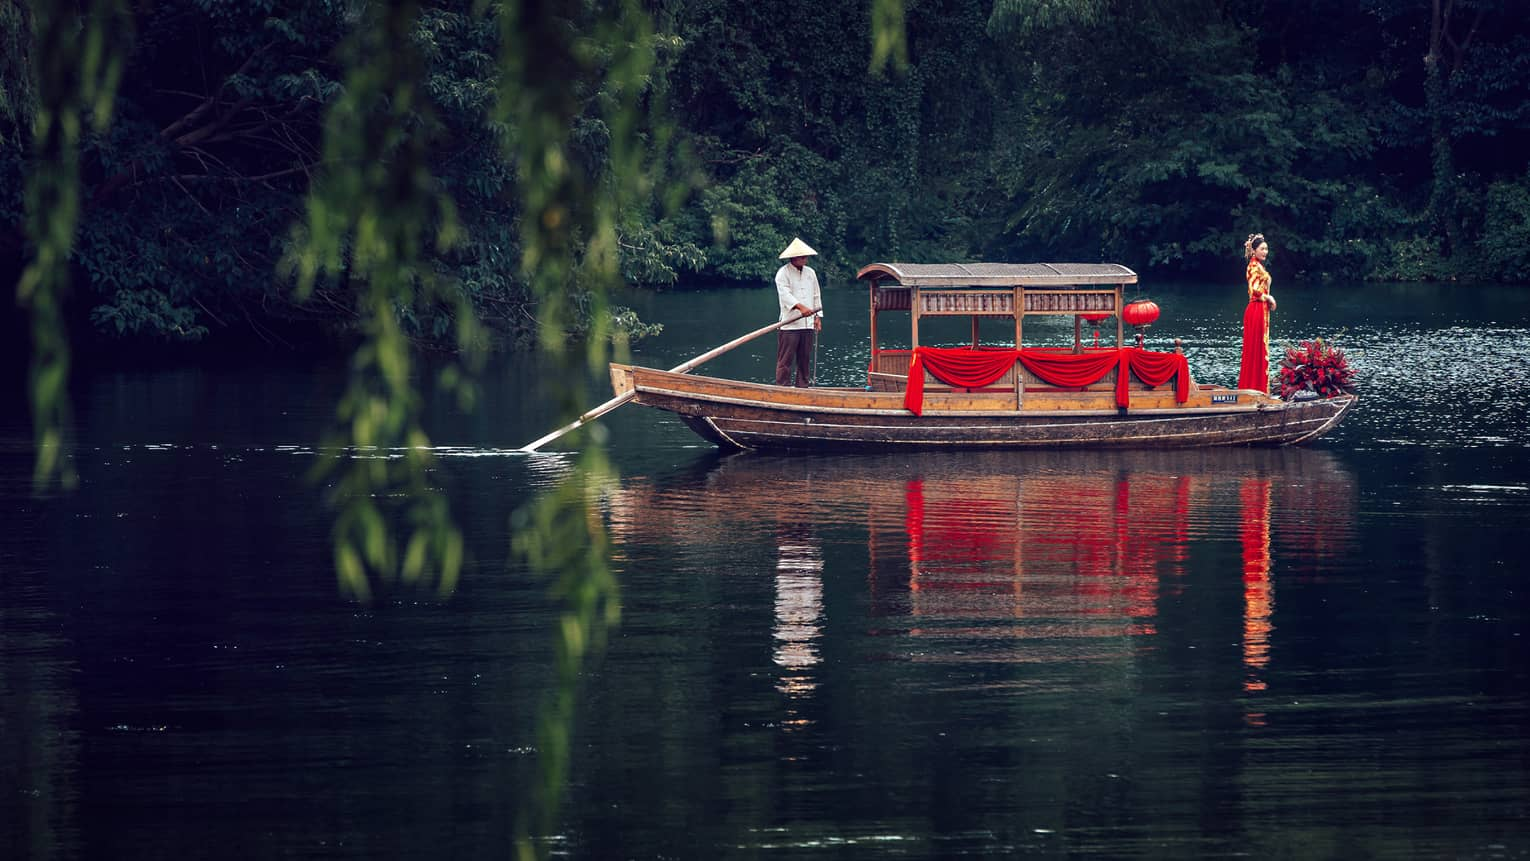 View across pond to bride wearing traditional red wedding gown at end of small boat